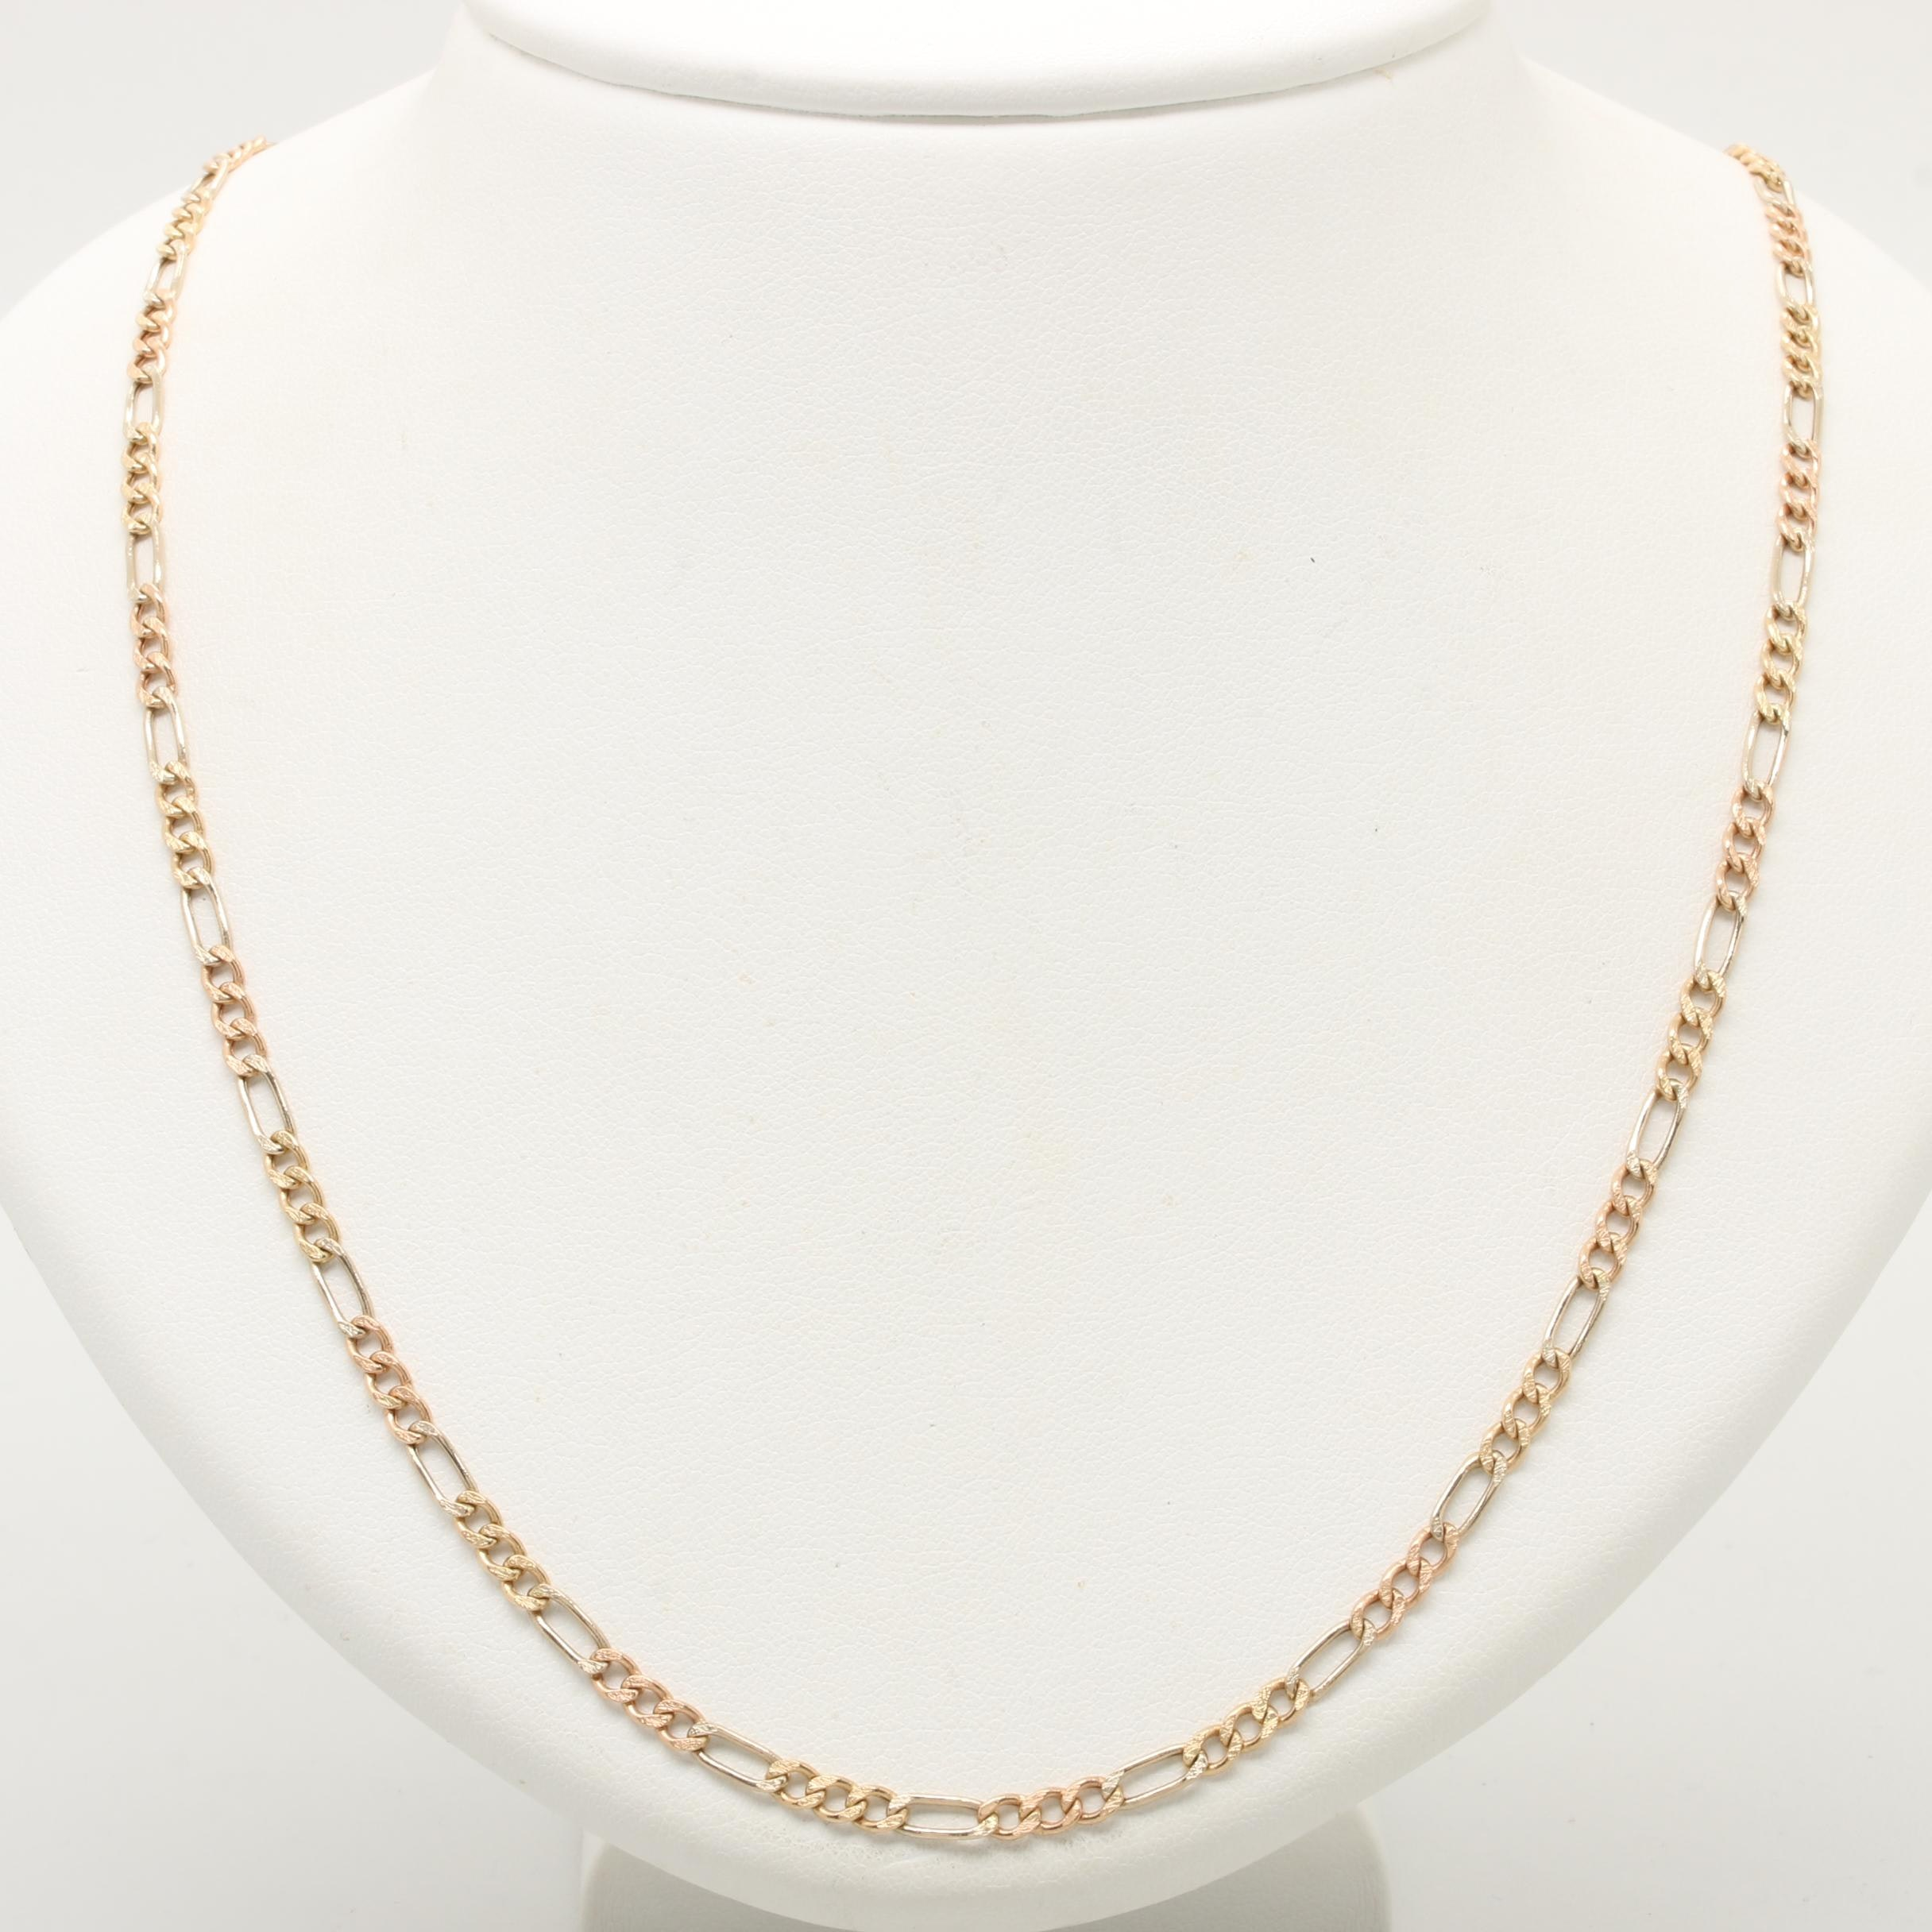 14K Yellow, Rose, and White Gold Figaro Chain Necklace